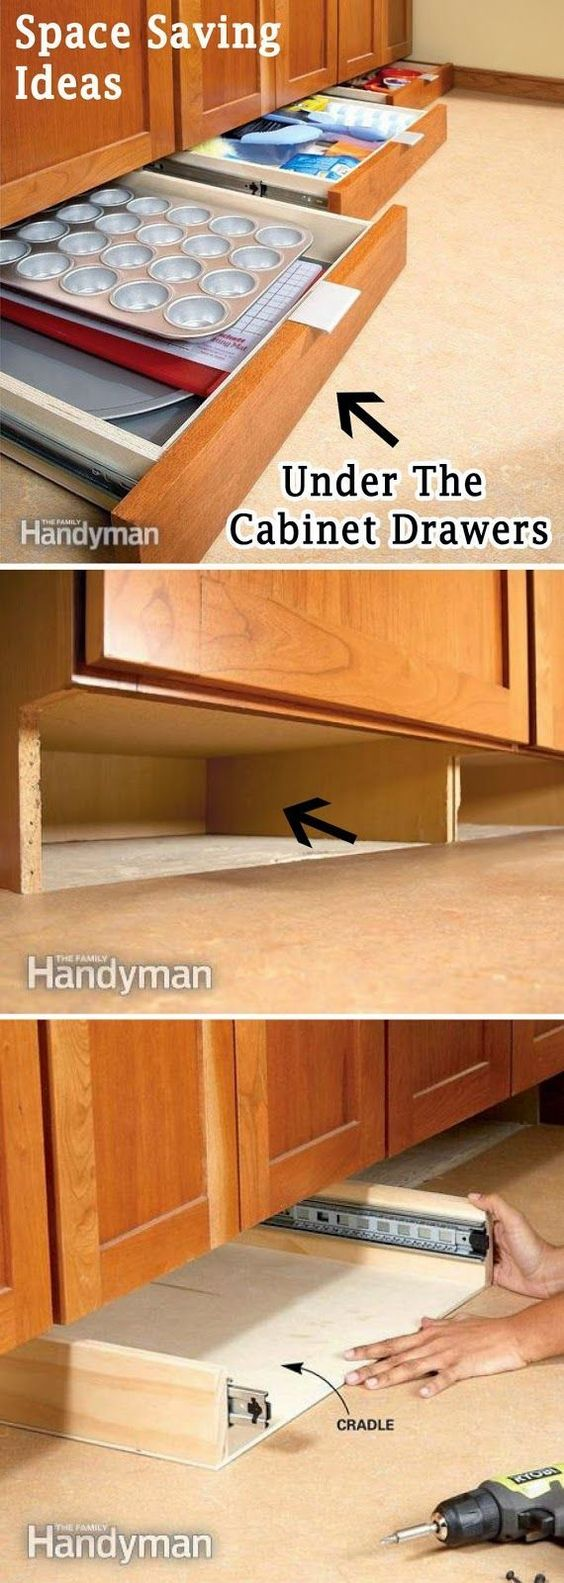 Create extra storage from the unused space underneath the cabinets.